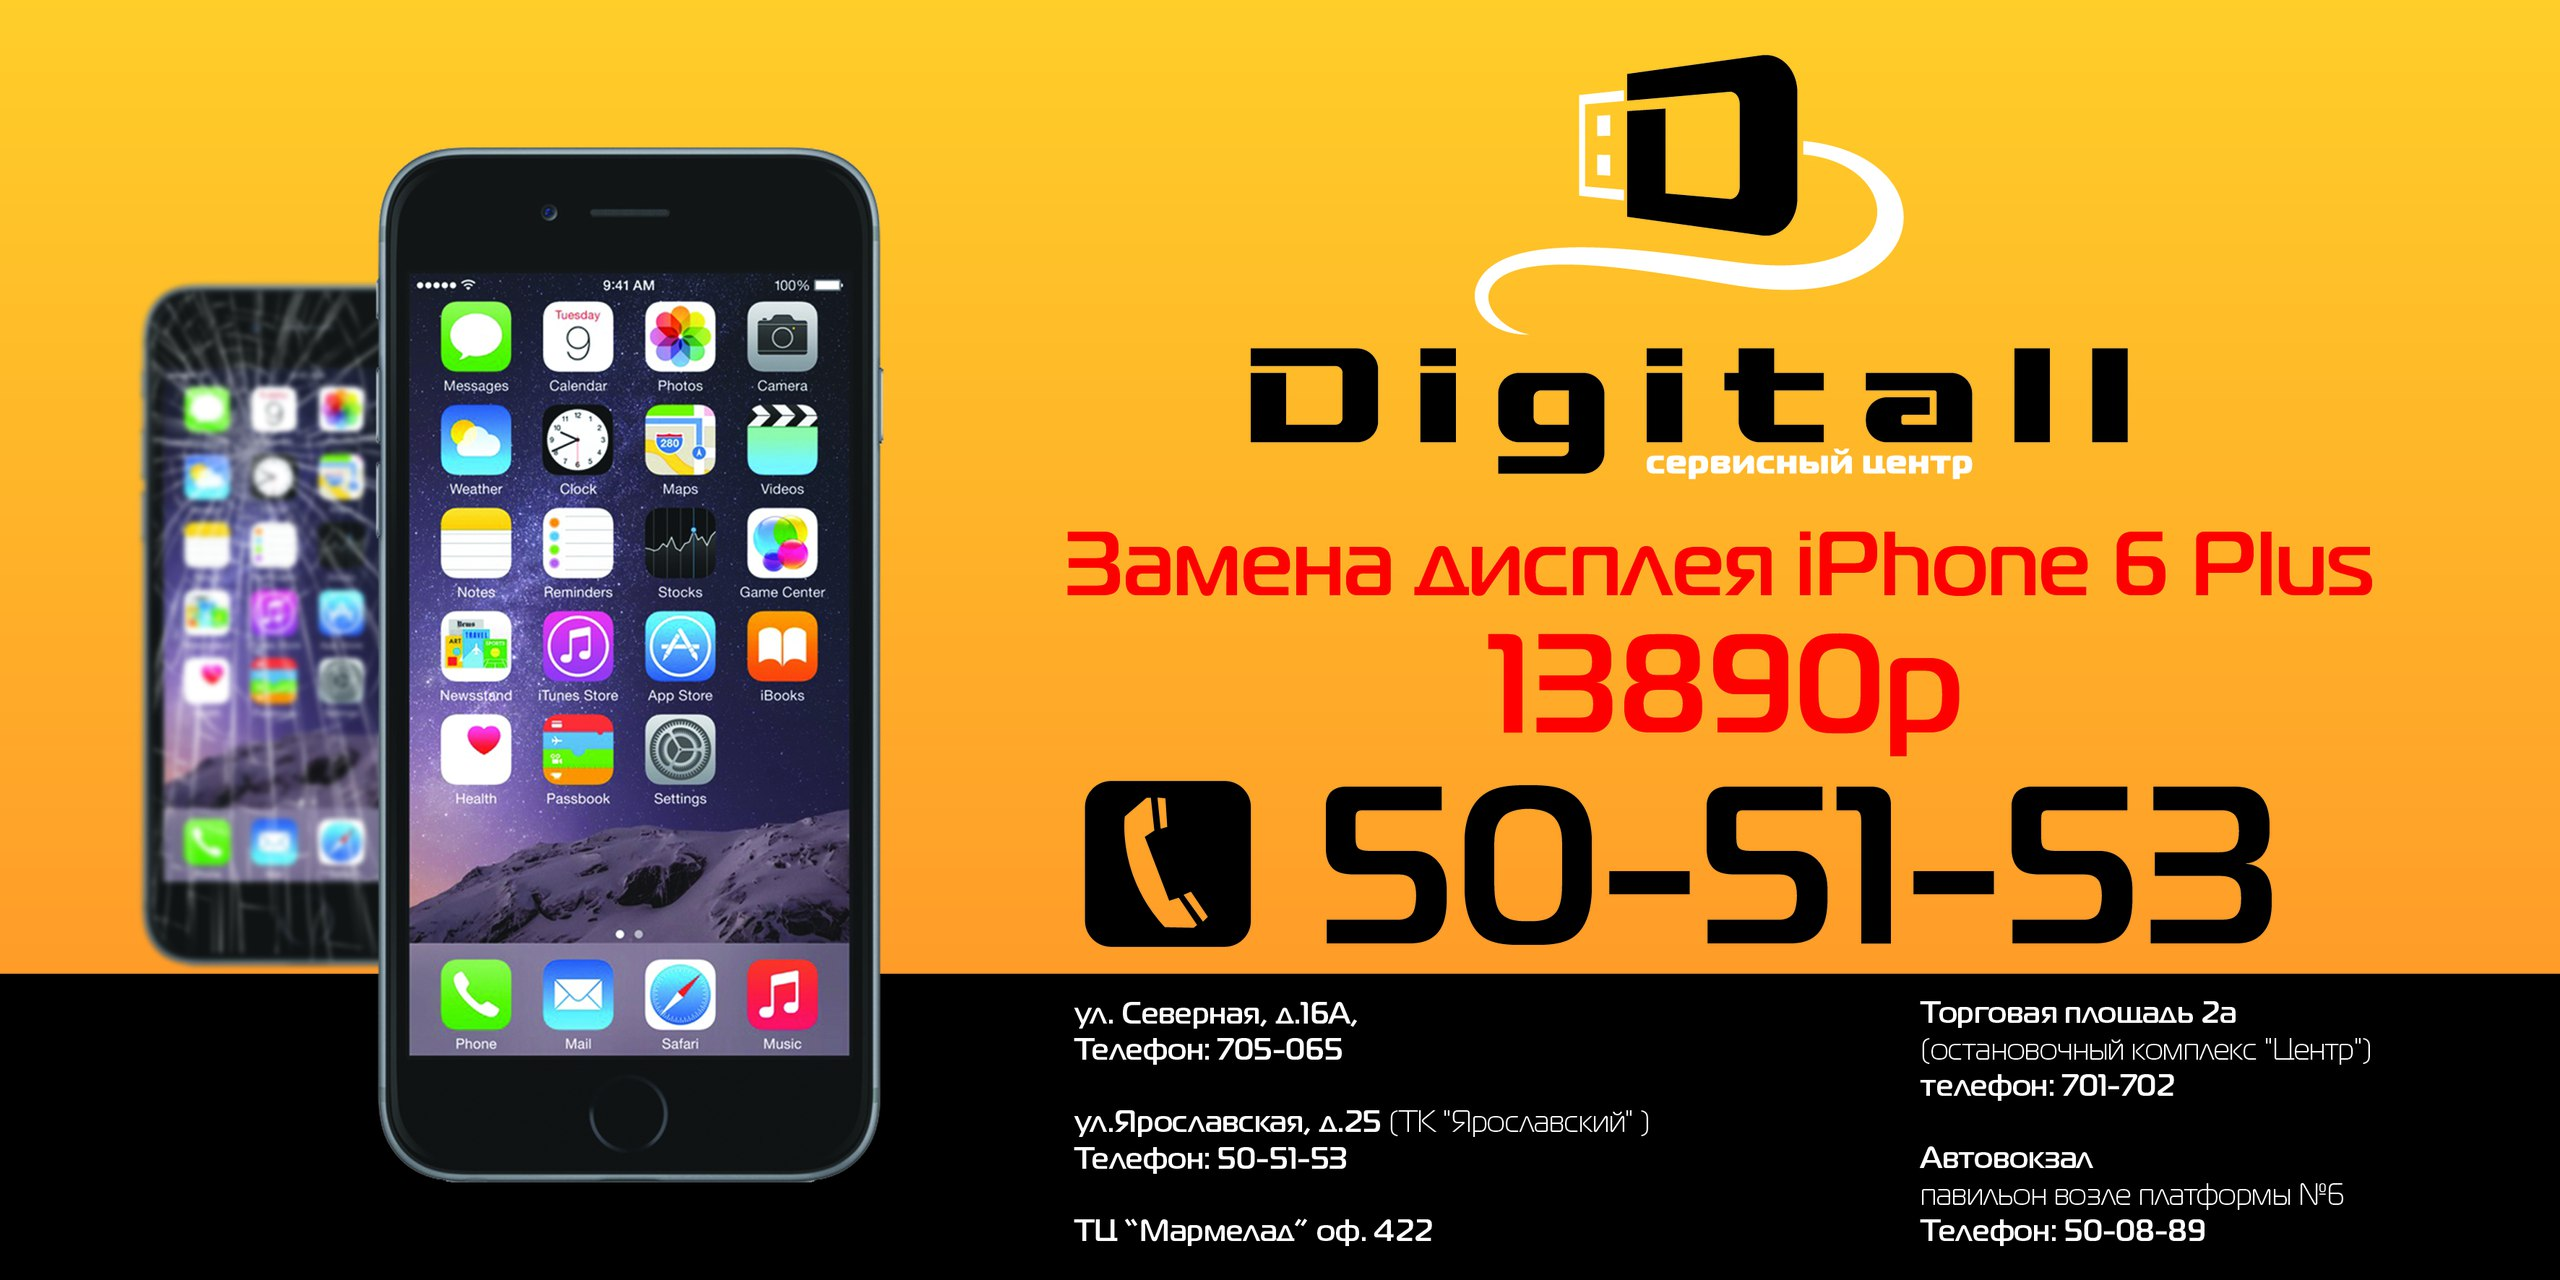 Замена дисплейного модуля iPhone 6 Plus